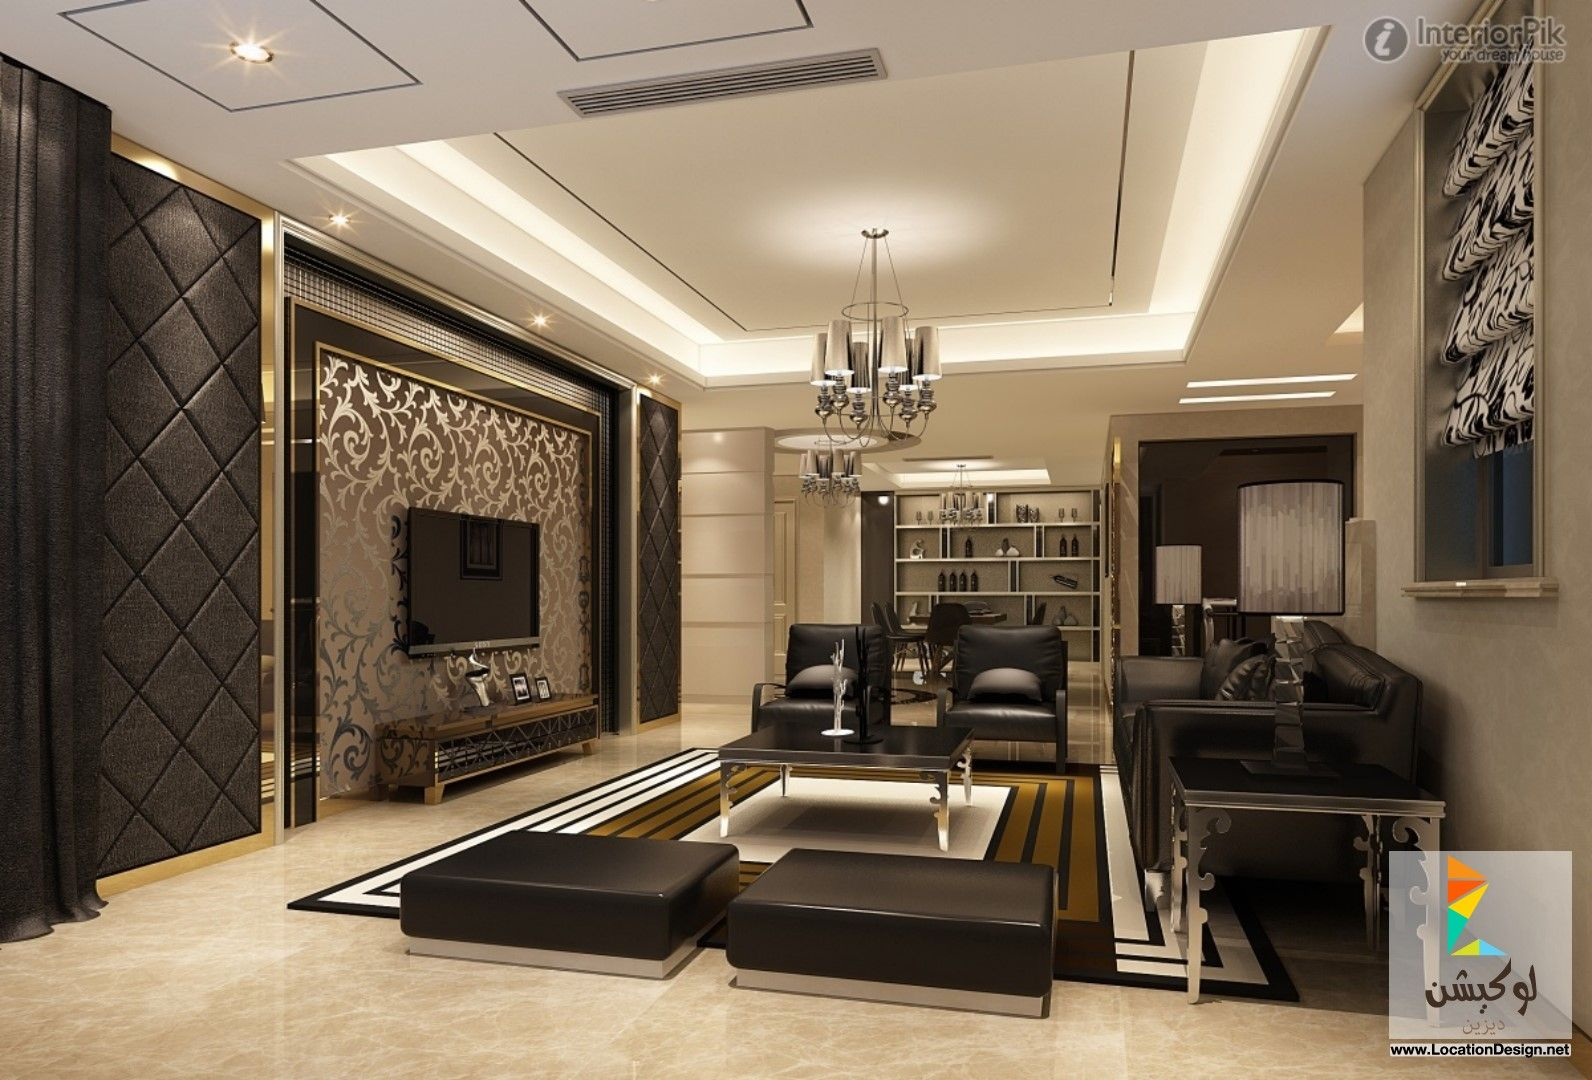 Villa living room tv wall stairs and corridors - Enthralling New Modern Living Room Lcd Tv Background Wall Decoration Effect Modern Wall Decor 16 Marvelous Living Room Designs That Will Leave You